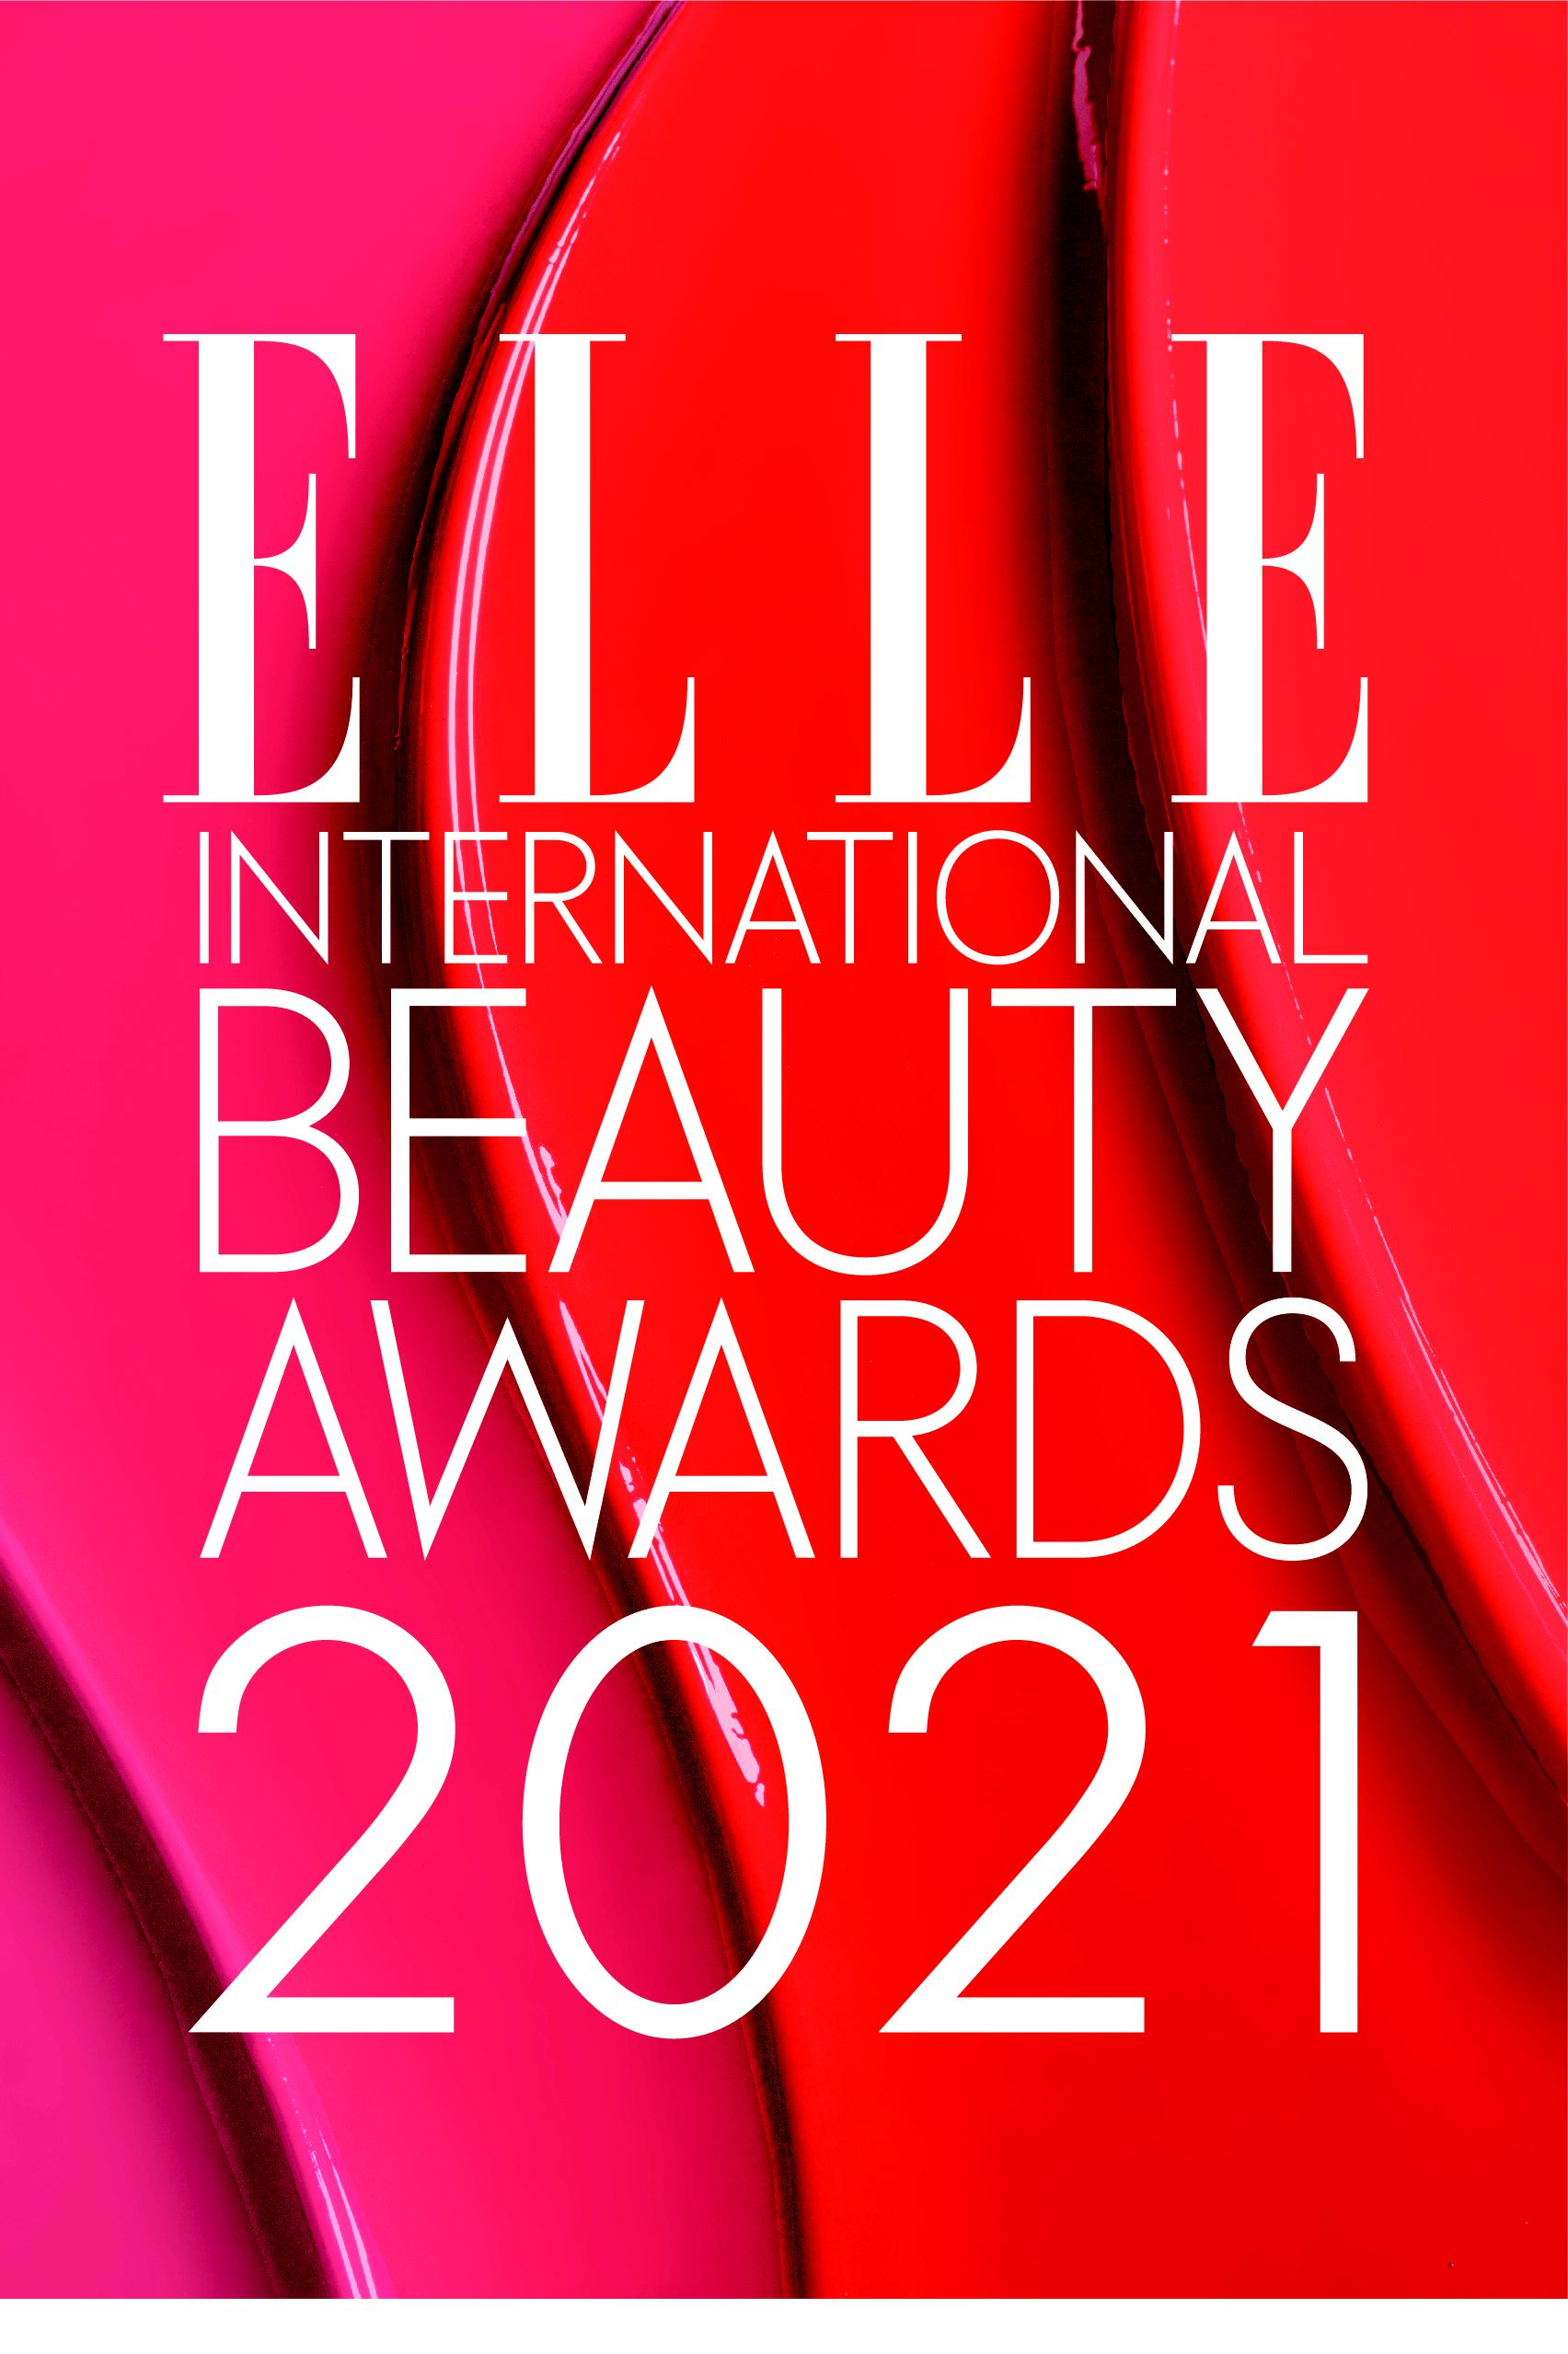 Elle International Beauty Awards 2021